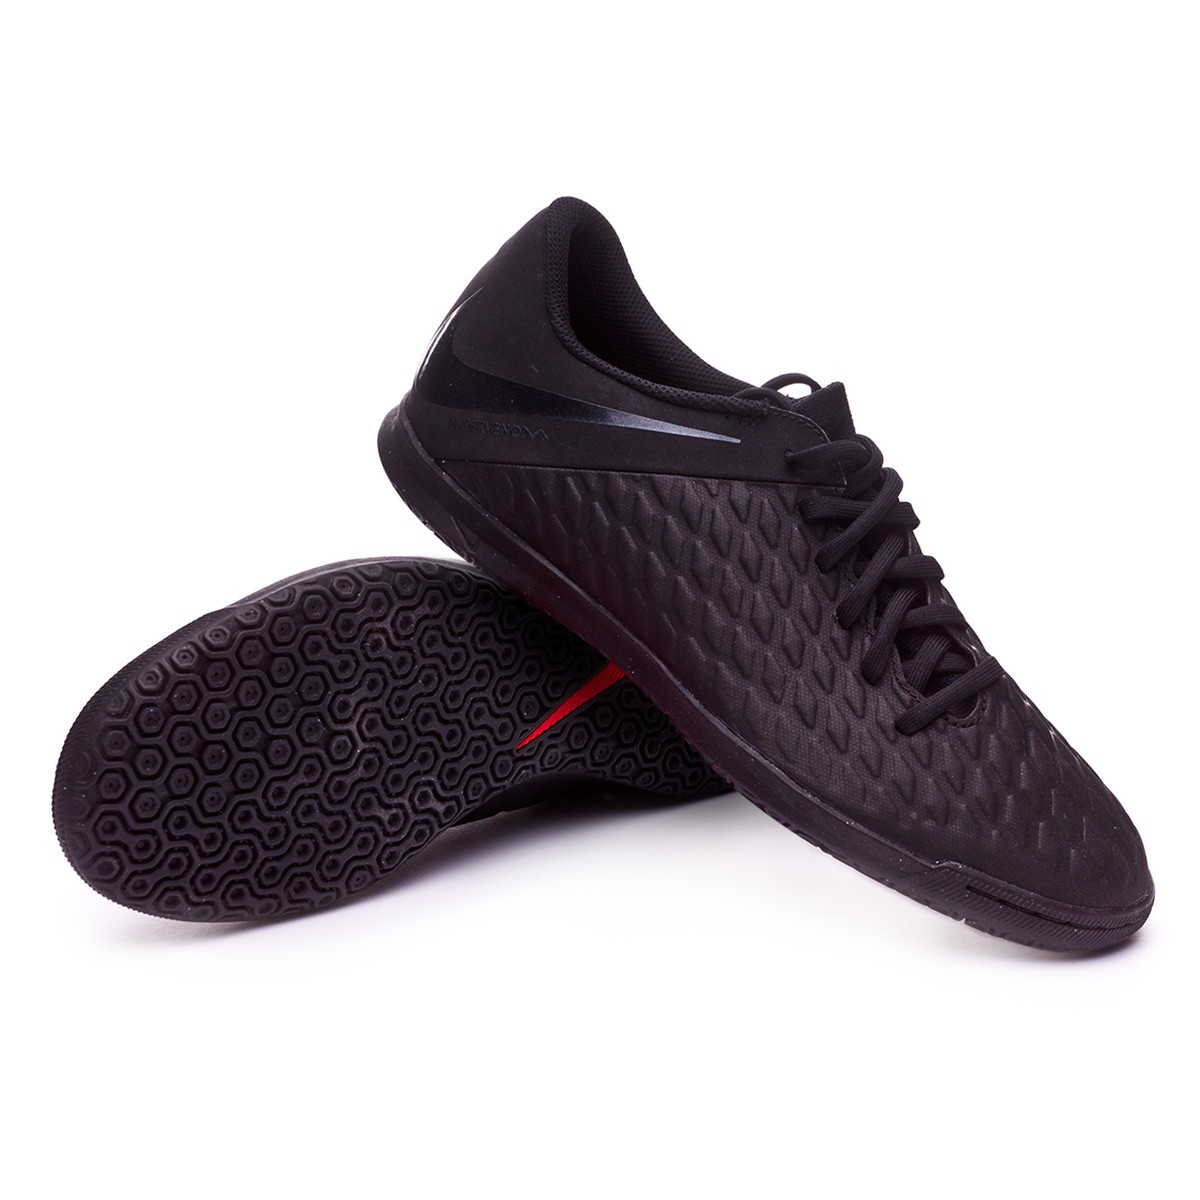 a19e0f0605a6 Futsal Boot Nike Hypervenom PhantomX III Club IC Black - Football ...